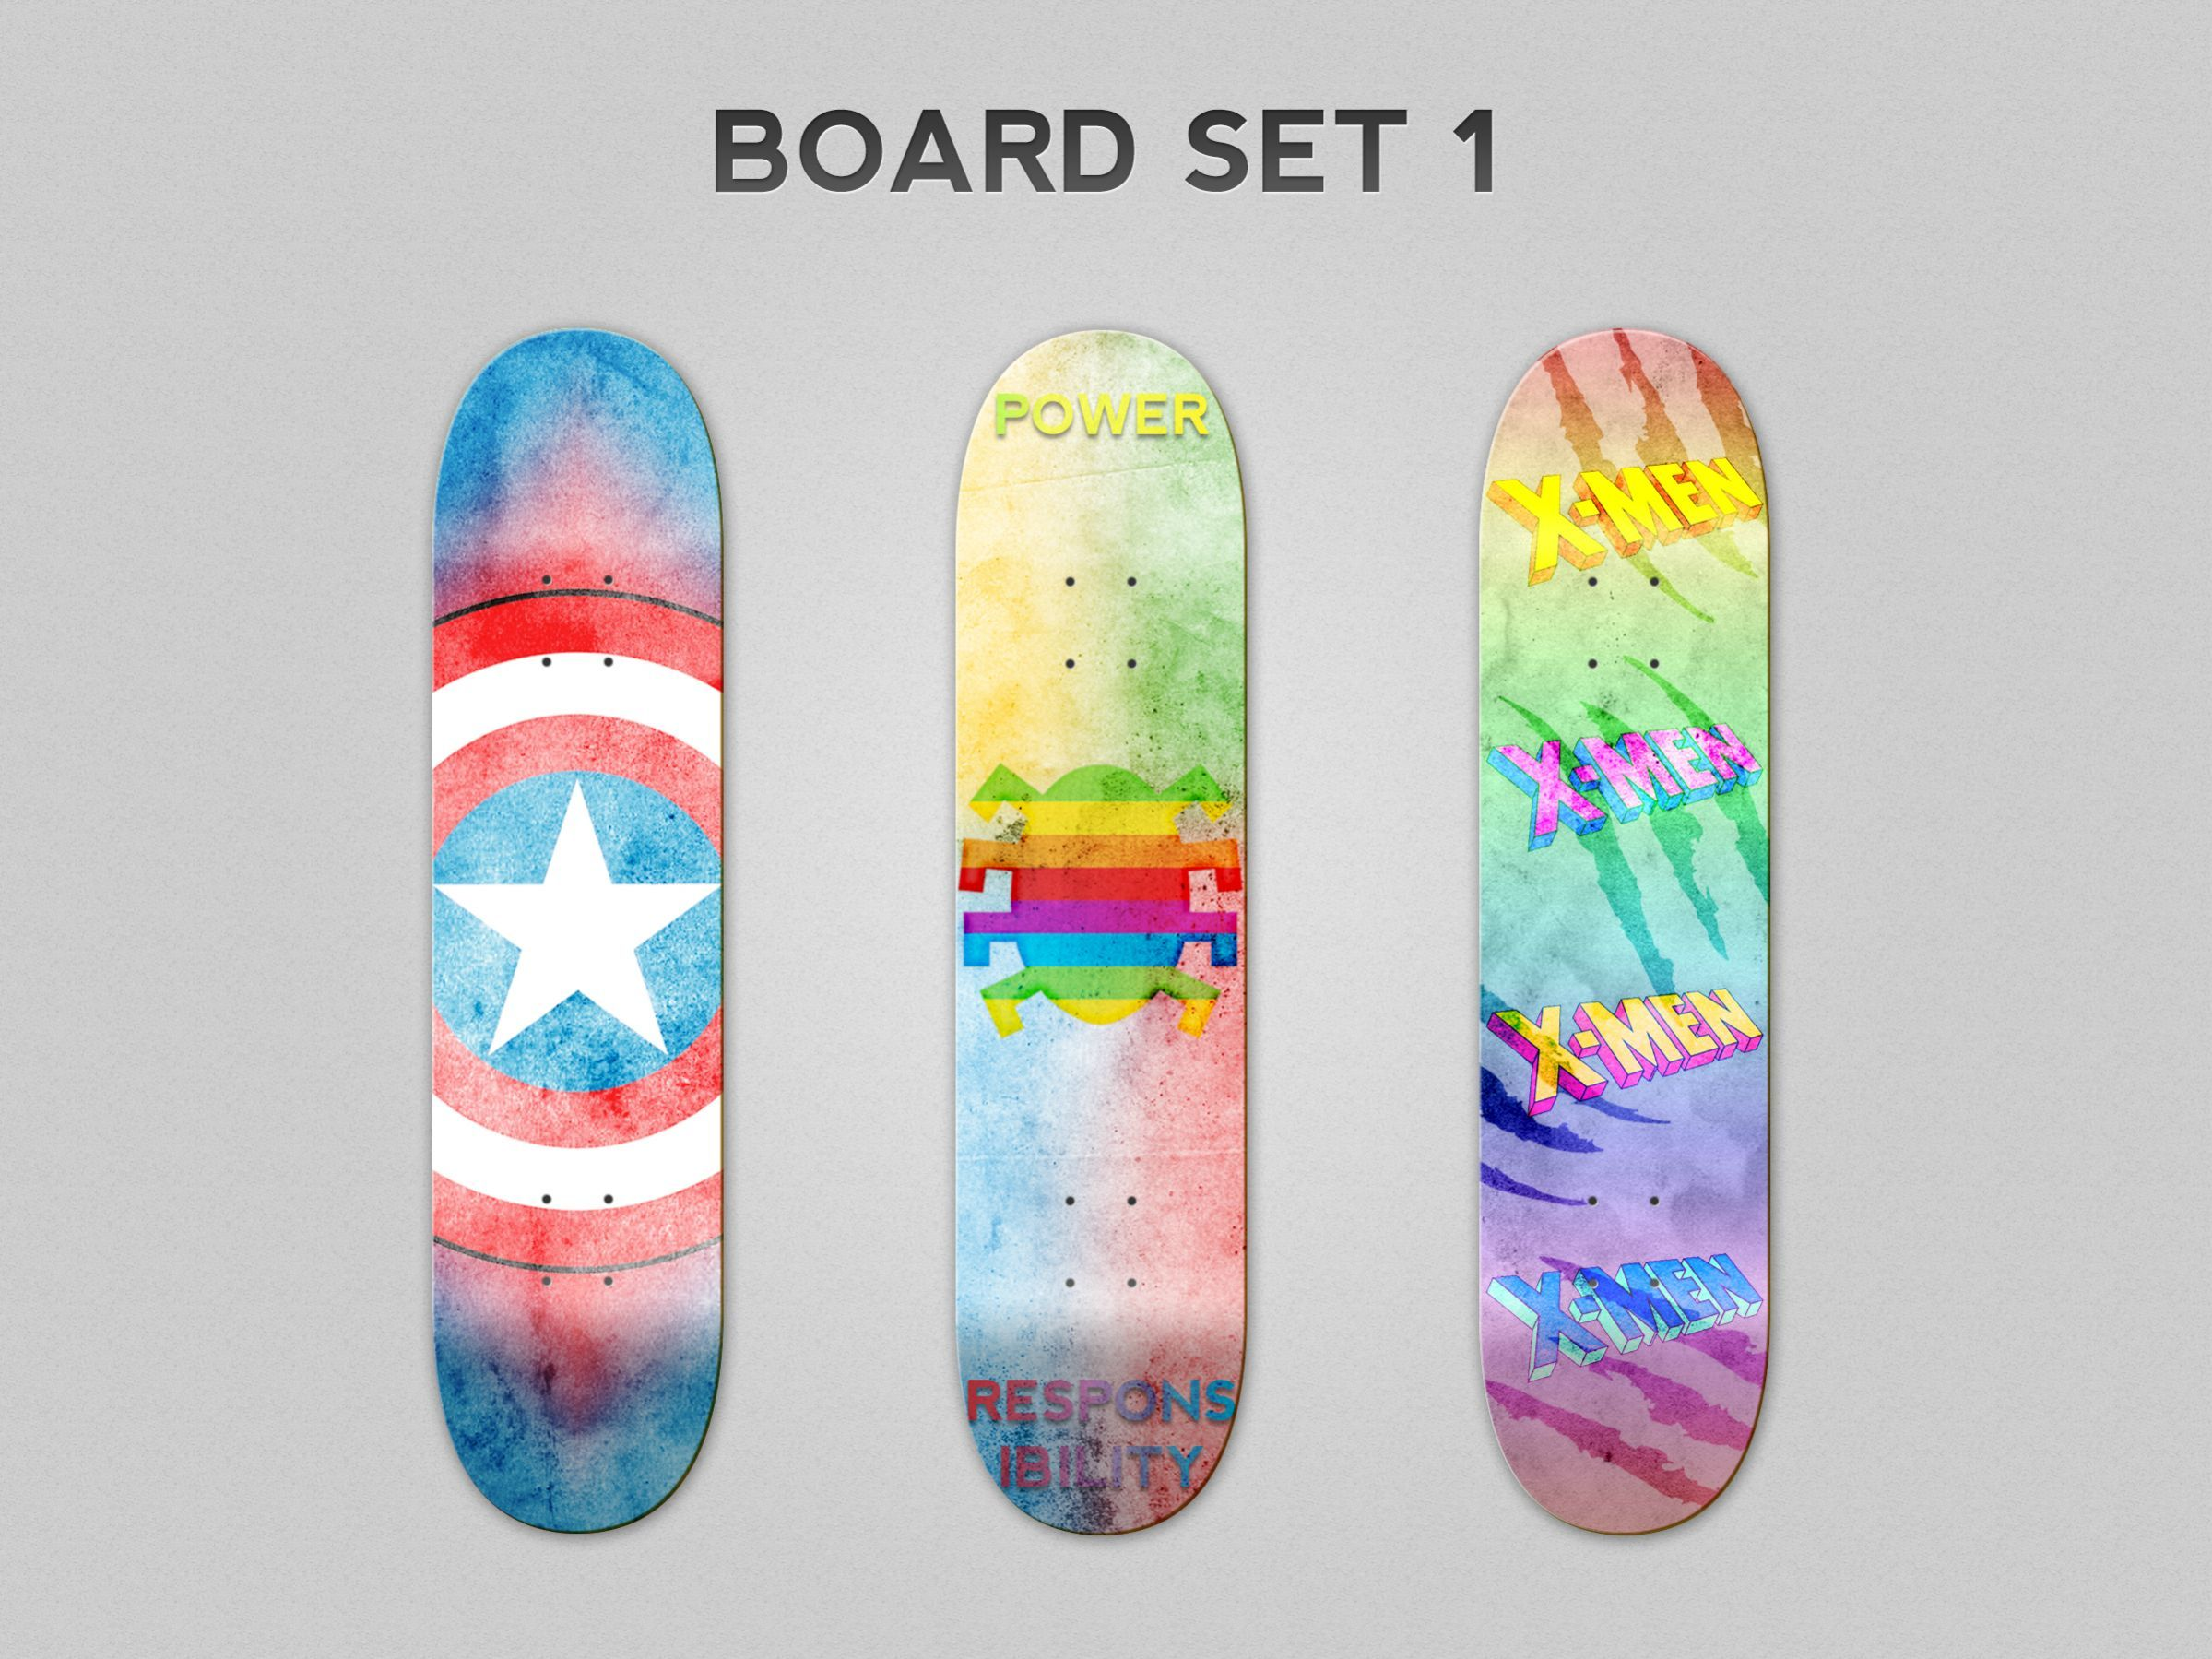 skateboard designs - Google Search